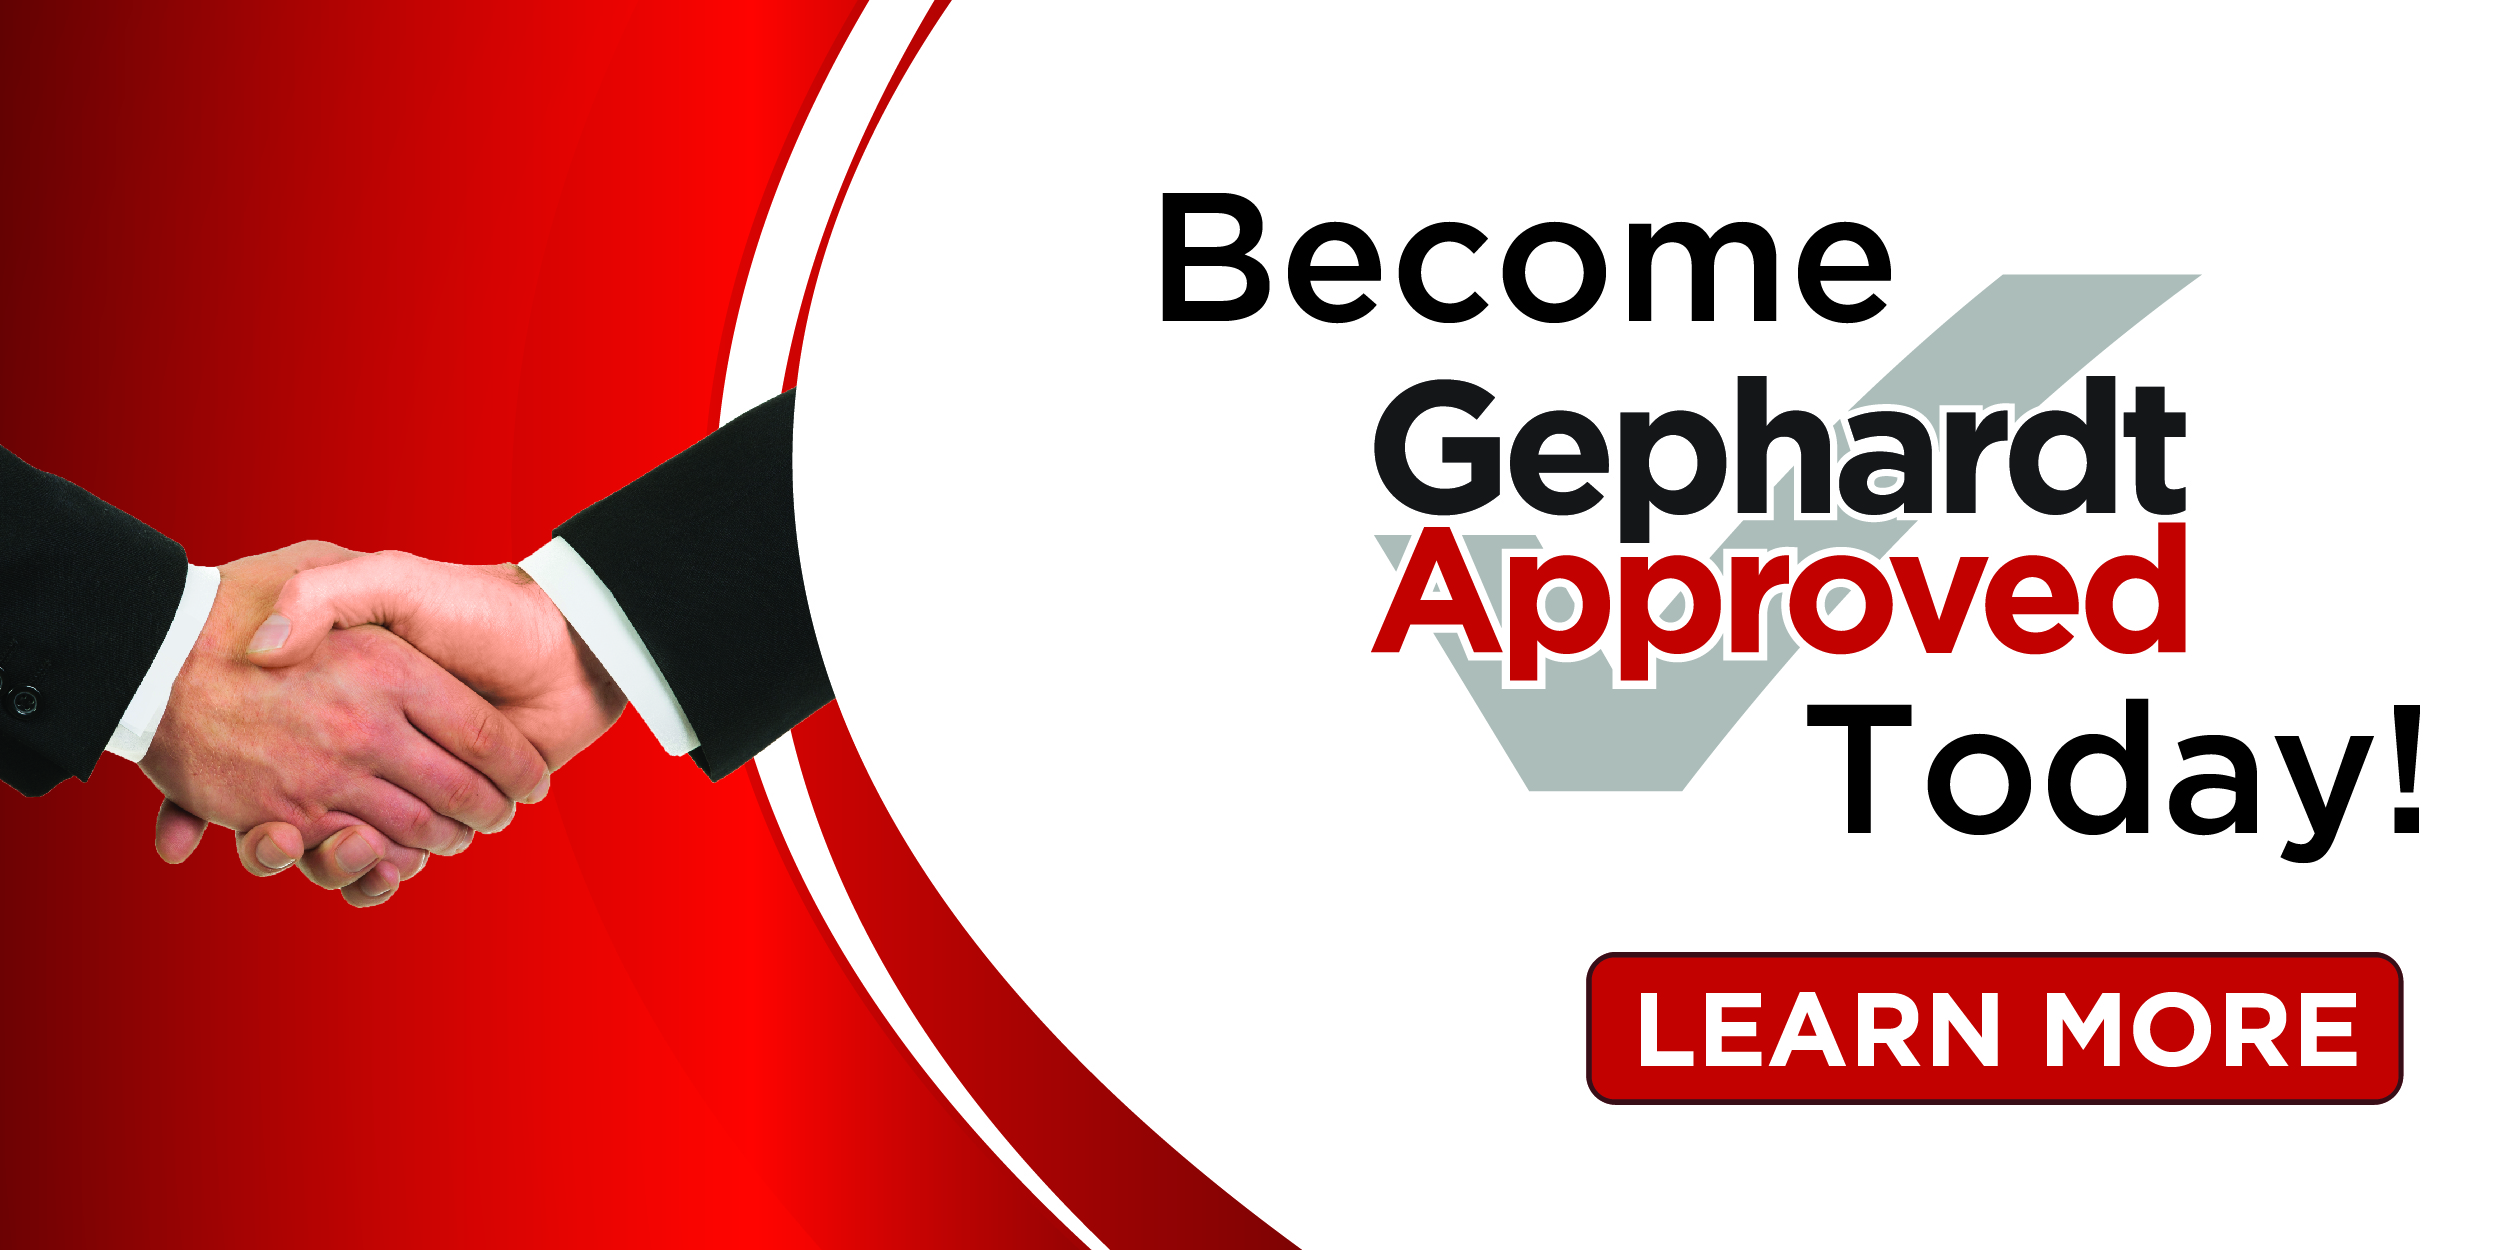 Become Gephardt Approved